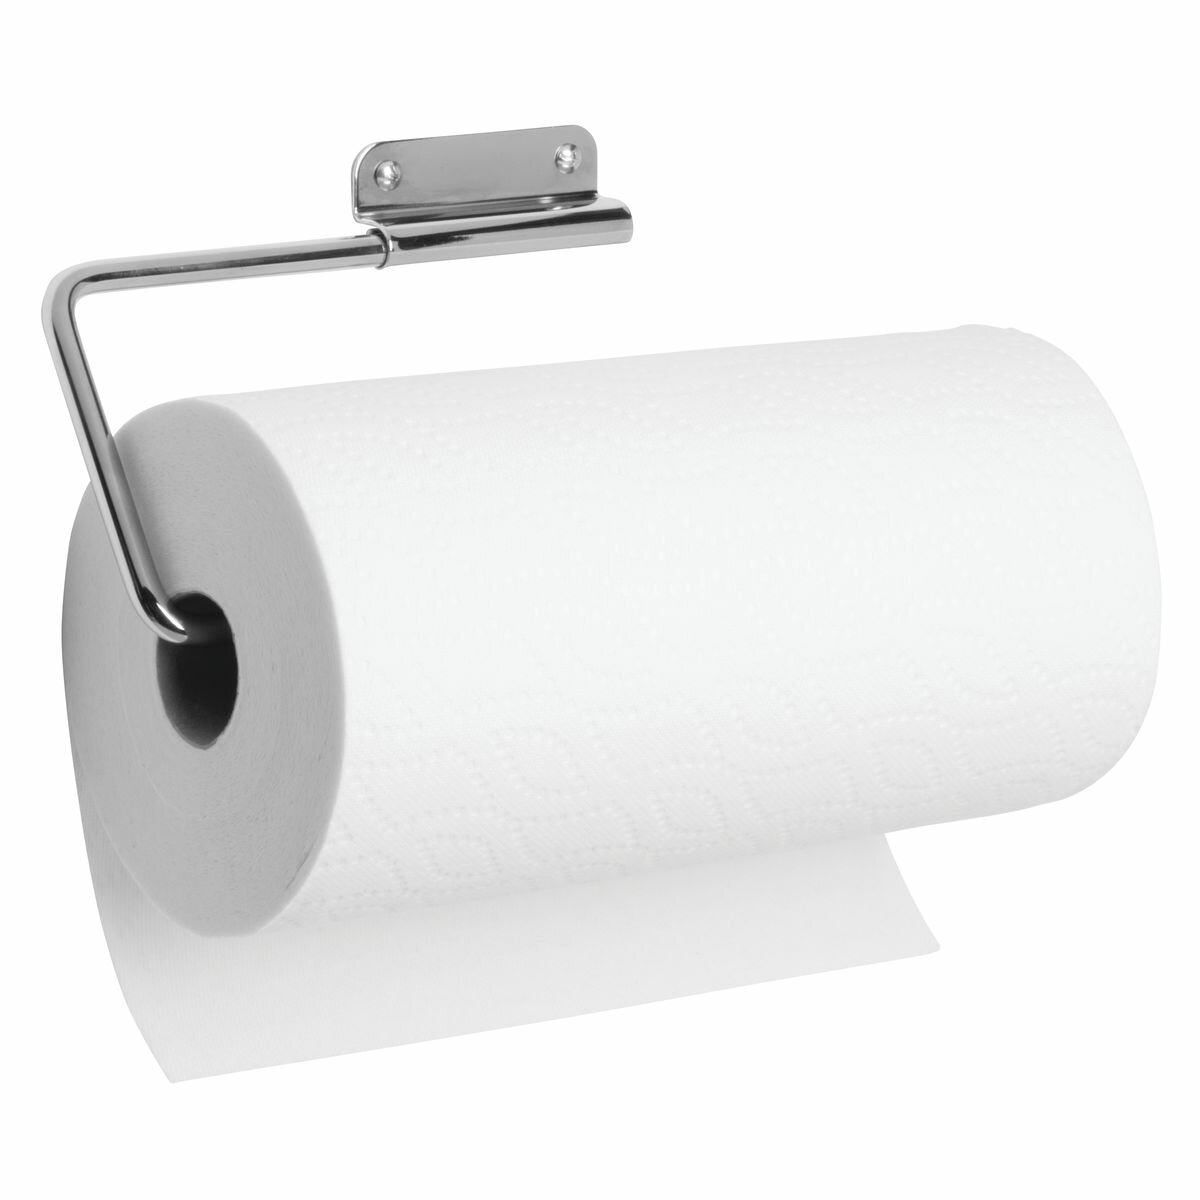 Interdesign swivel wall mounted toilet paper holder wayfair - Interdesign toilet paper holder ...